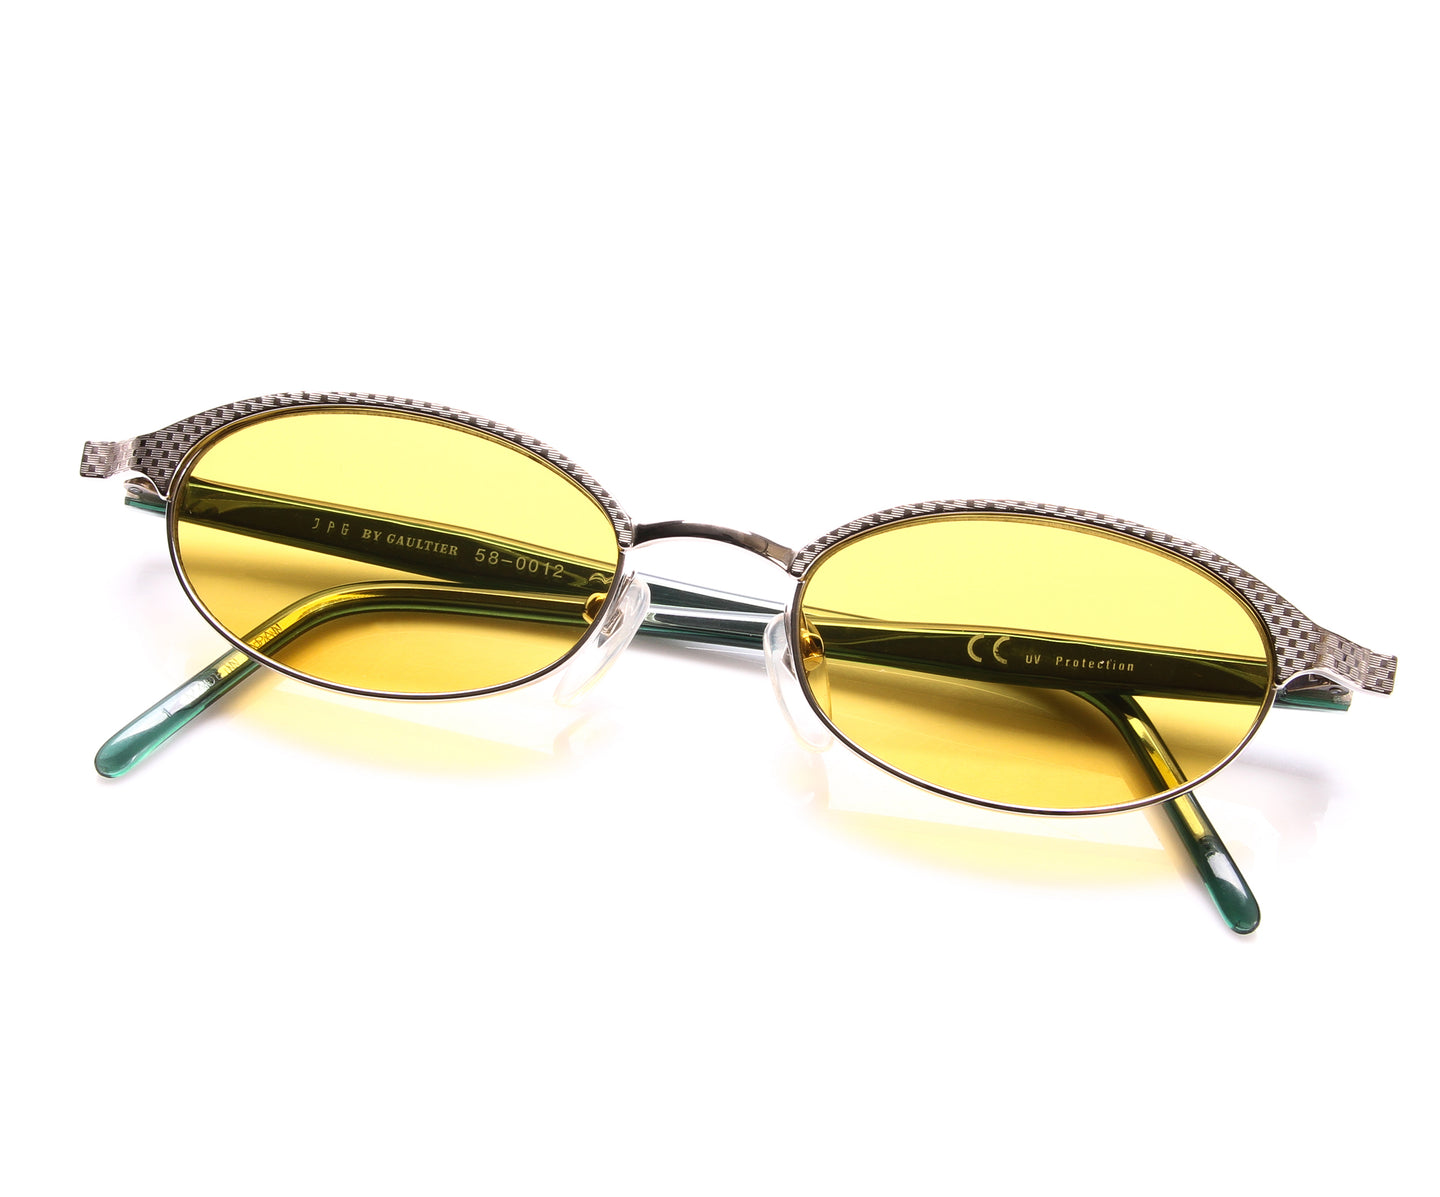 Jean Paul Gaultier 58 0012, Jean Paul Gaultier , glasses frames, eyeglasses online, eyeglass frames, mens glasses, womens glasses, buy glasses online, designer eyeglasses, vintage sunglasses, retro sunglasses, vintage glasses, sunglass, eyeglass, glasses, lens, vintage frames company, vf